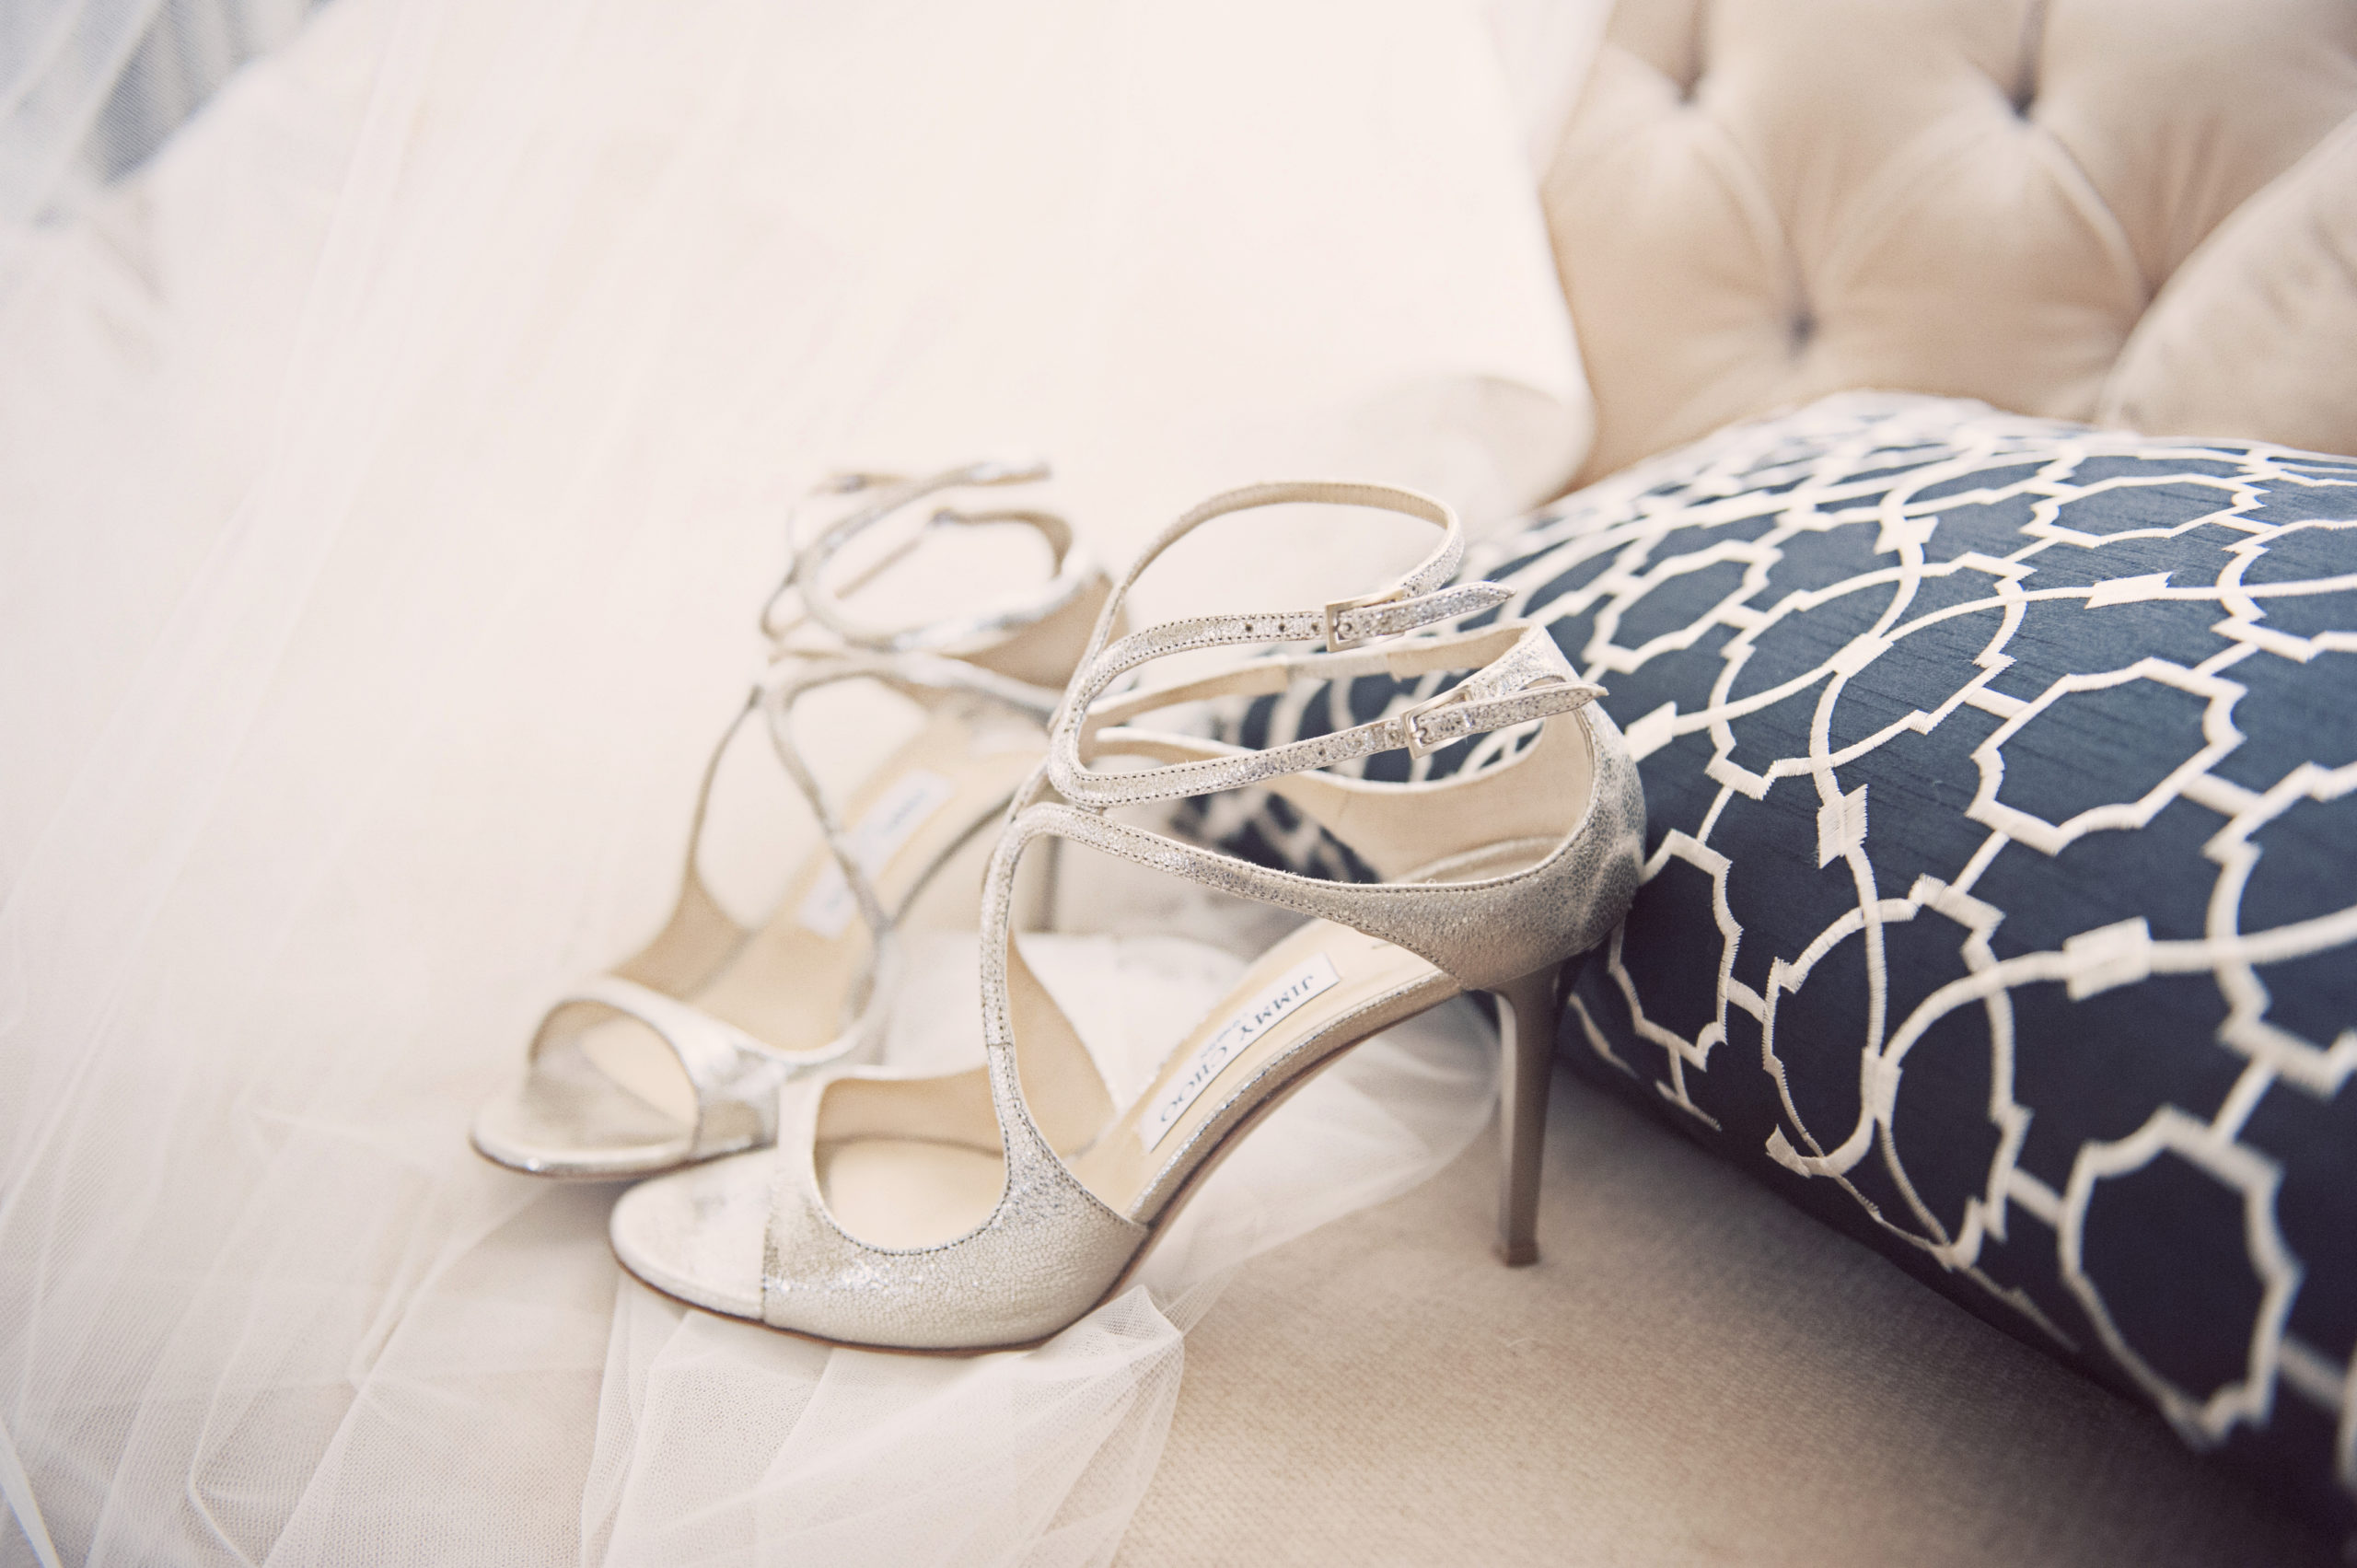 Classic Hollywood Wedding California I Dee Kay Events I New Jersey Wedding Planner I Wedding Shoes